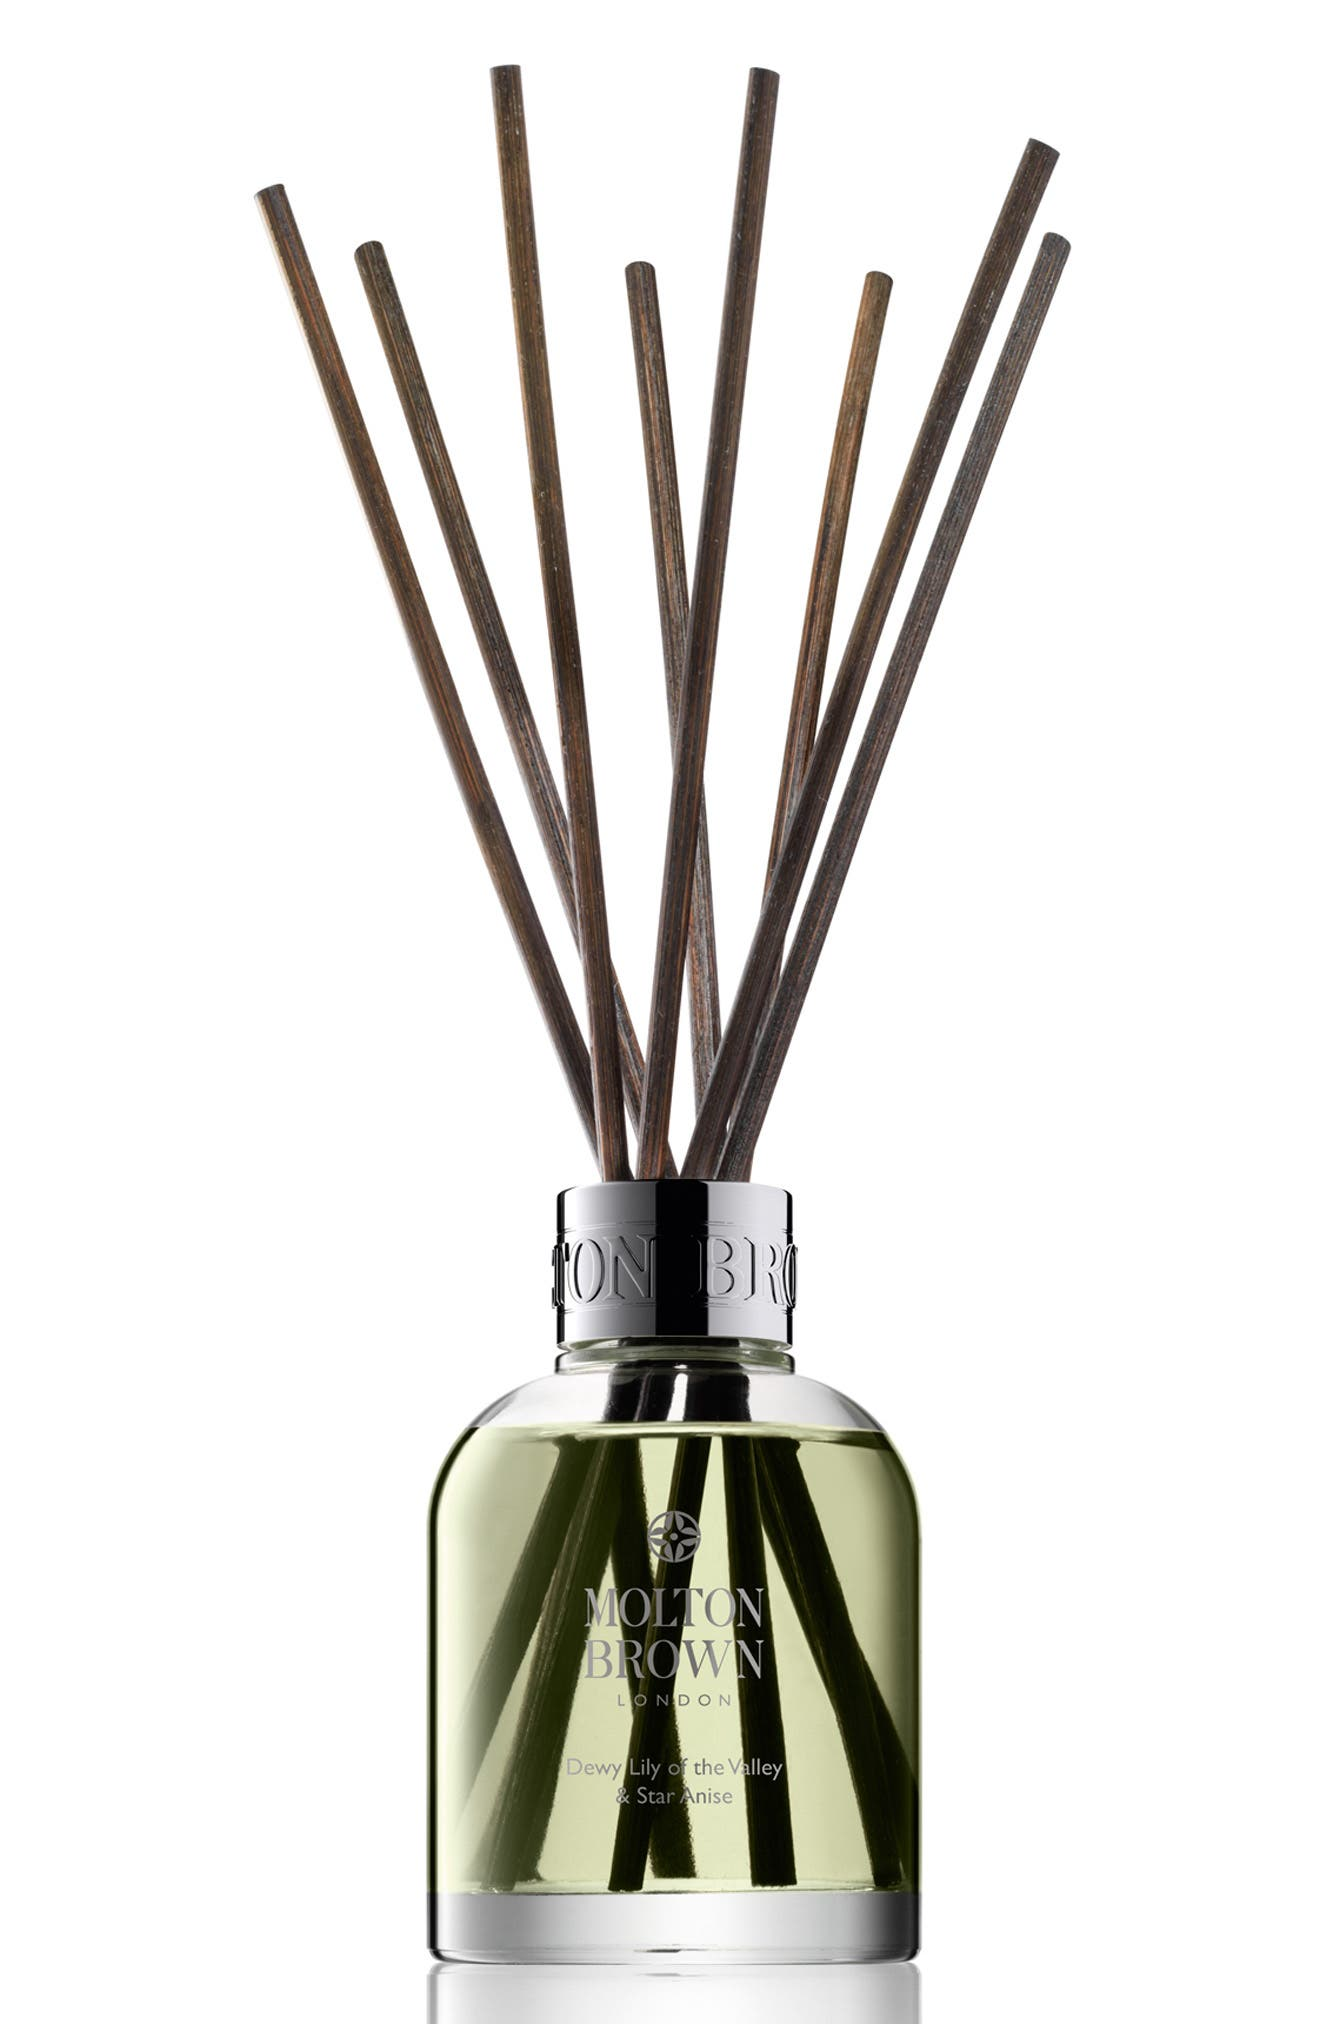 'Dewy Lily of the Valley & Star Anise' Aroma Reeds,                         Main,                         color, 100